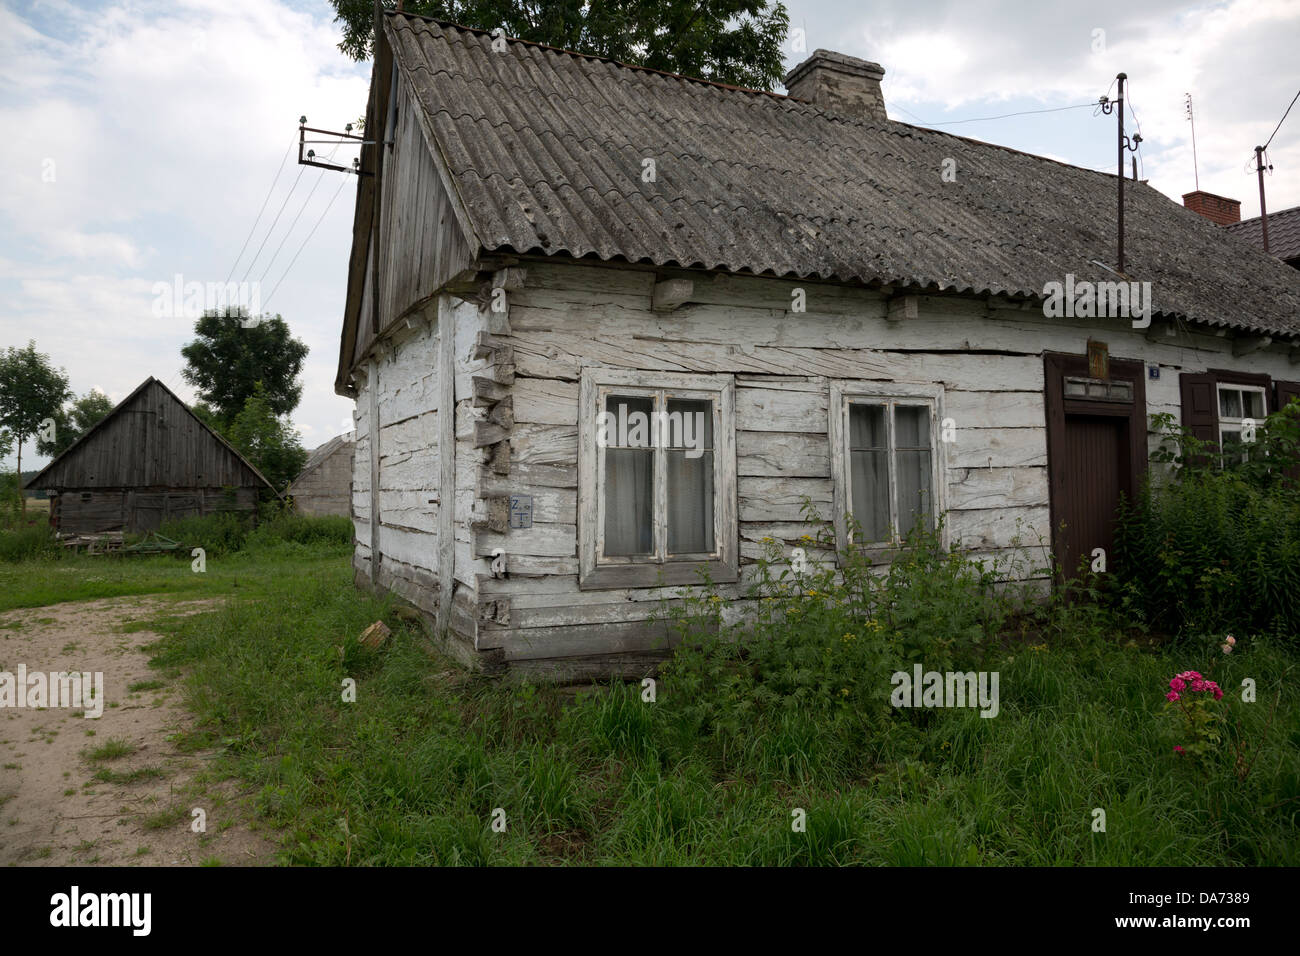 Cottage di botte in Liw, Polonia Foto Stock